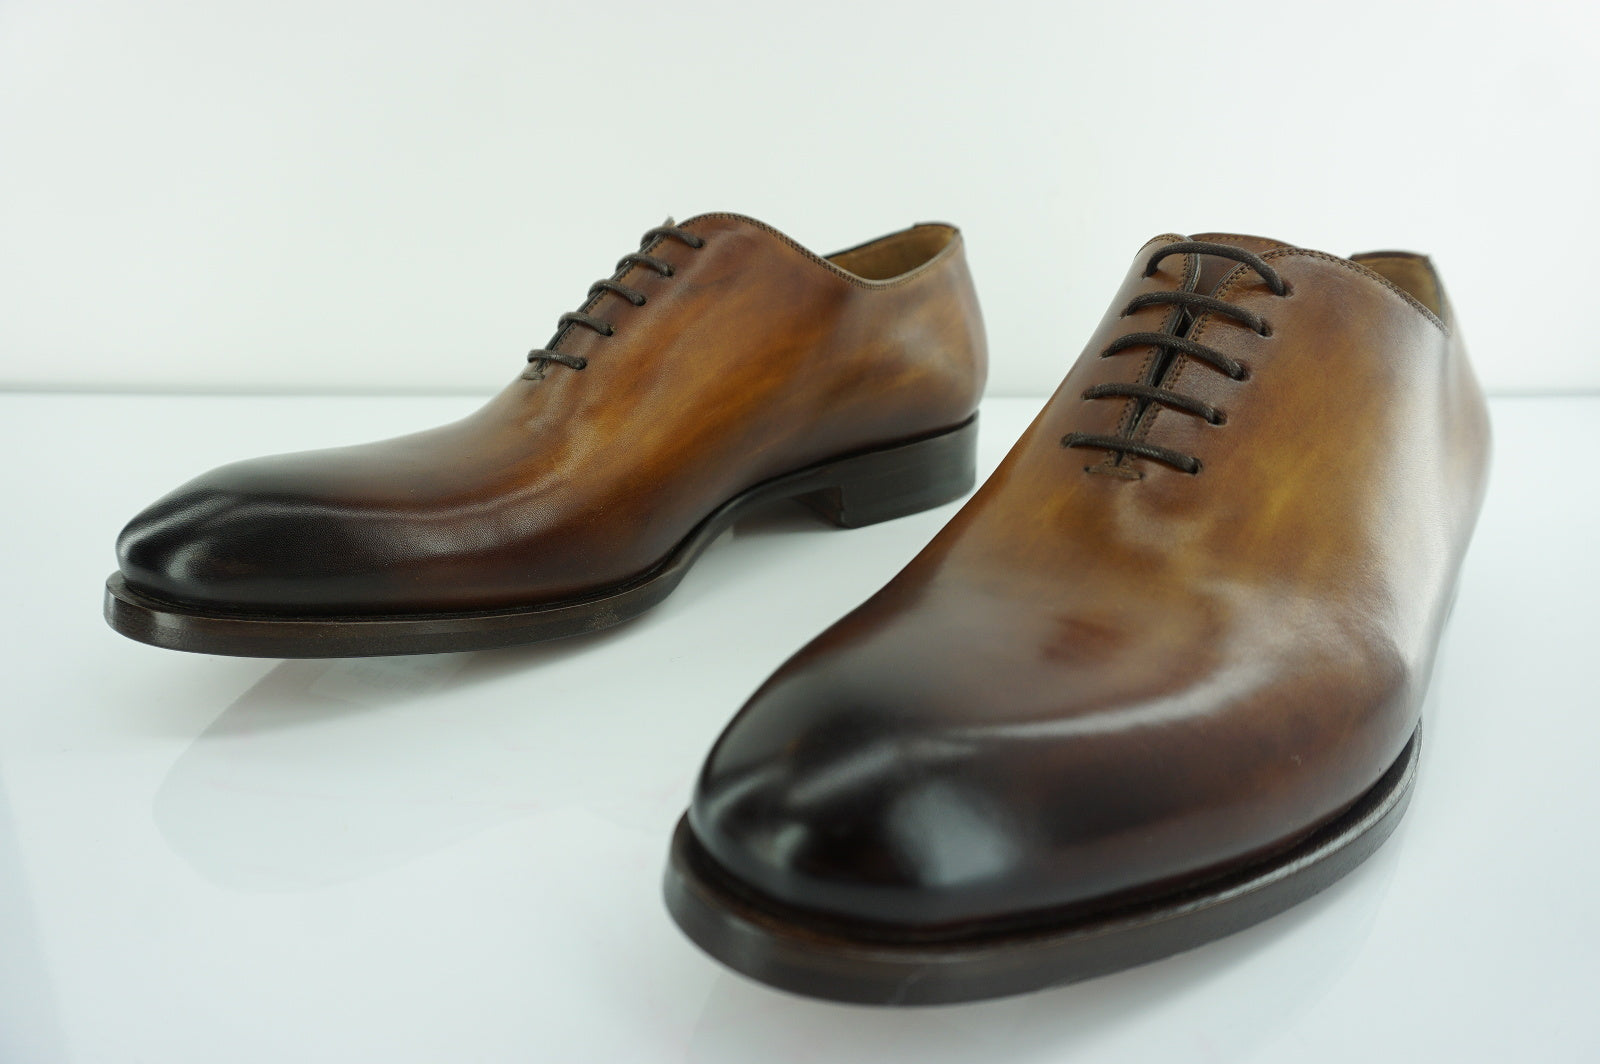 Magnanni Men's Leather Ryder Burnished Brown Lace Up Oxfords size 8 New $450